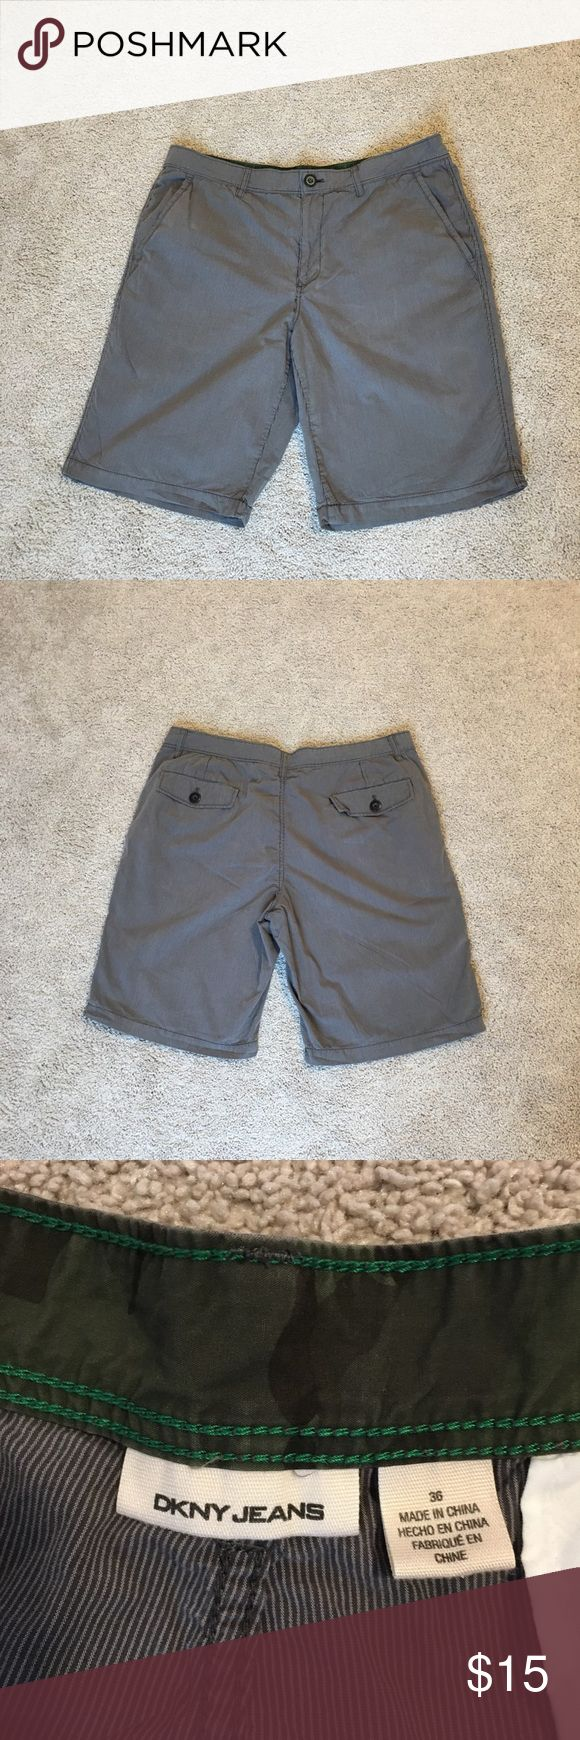 DKNY Men's Shorts DKNY Men's shorts. Size 36. Gray with stripe pattern. Excellent condition! All offers are welcome! Dkny Shorts